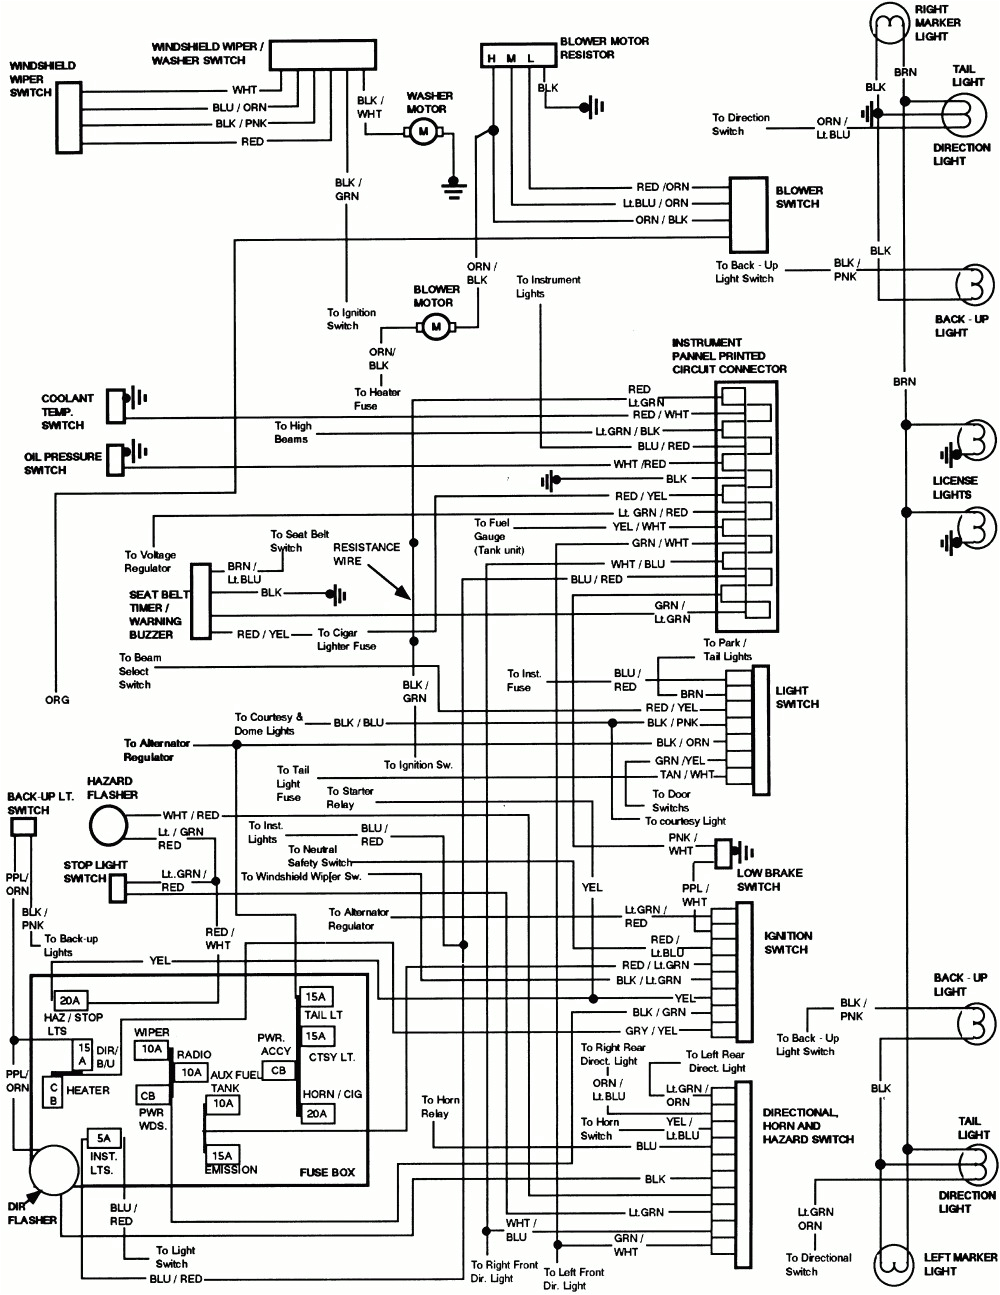 91 f150 wiring diagram wiring diagram review 1991 ford f150 ignition wiring diagram 1991 ford f150 ignition wiring diagram